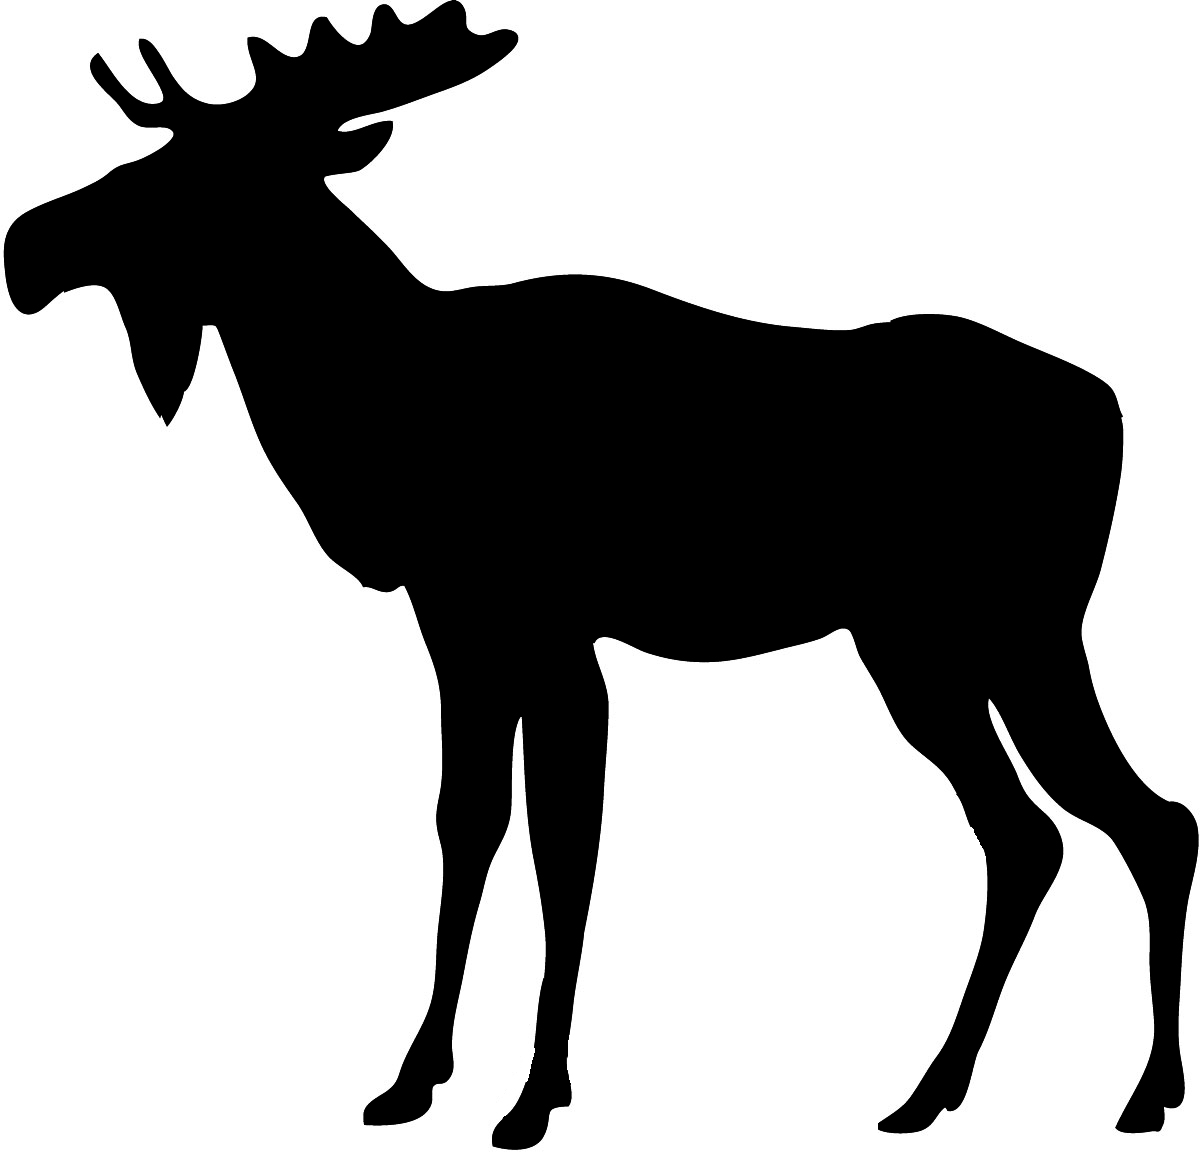 1200x1153 Image of moose clipart 9 clip art silhouette free